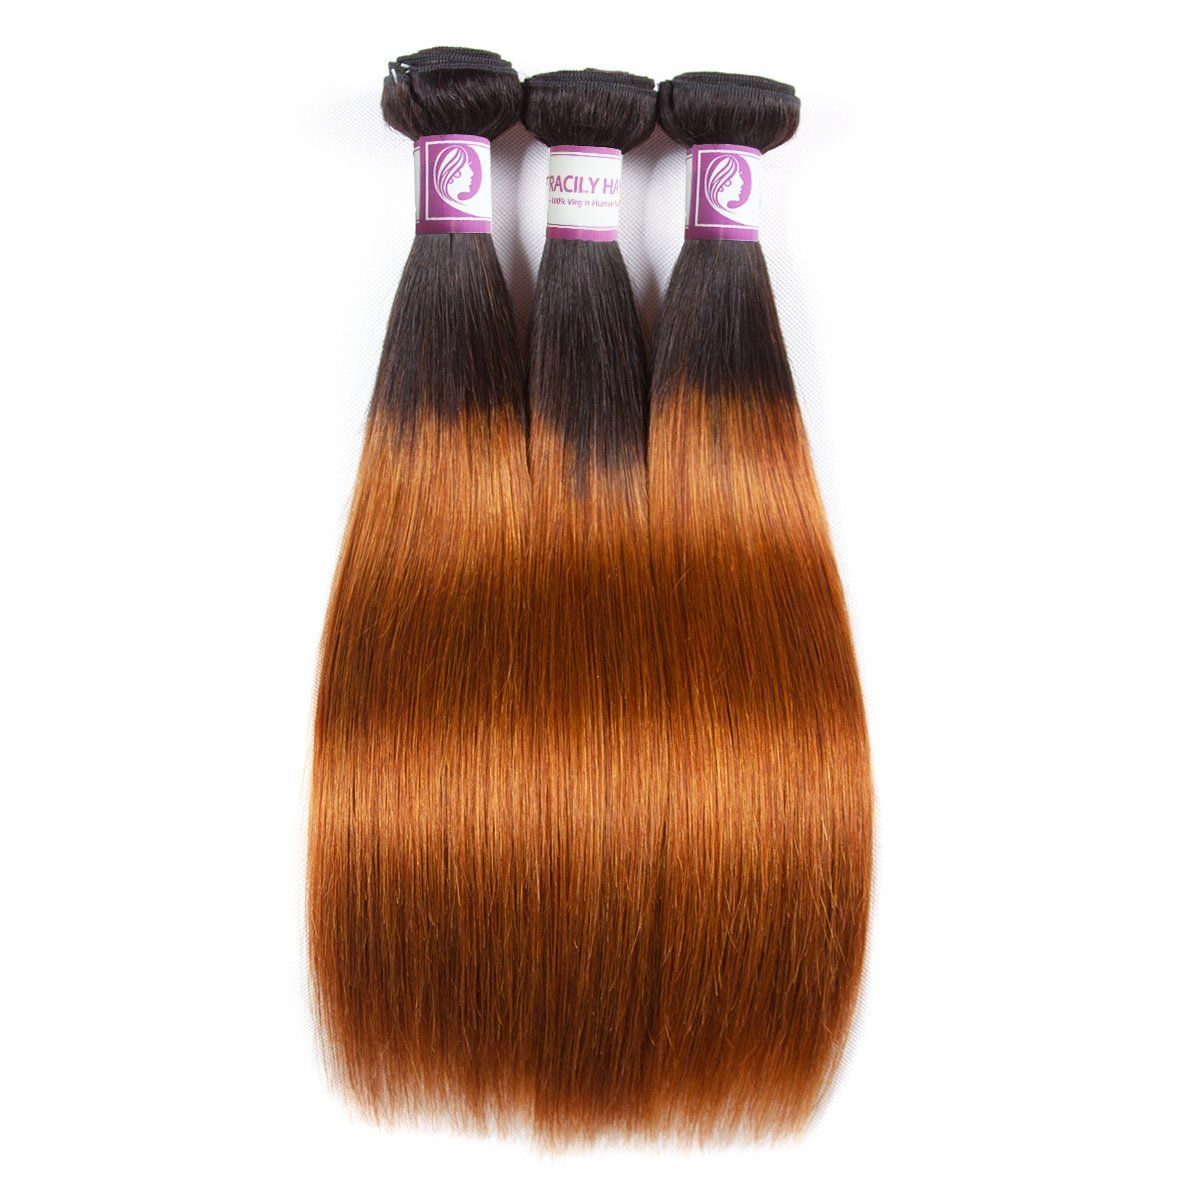 Racily Hair 1B/30 Ombre Brazilian Hair Straight 3 Bundles